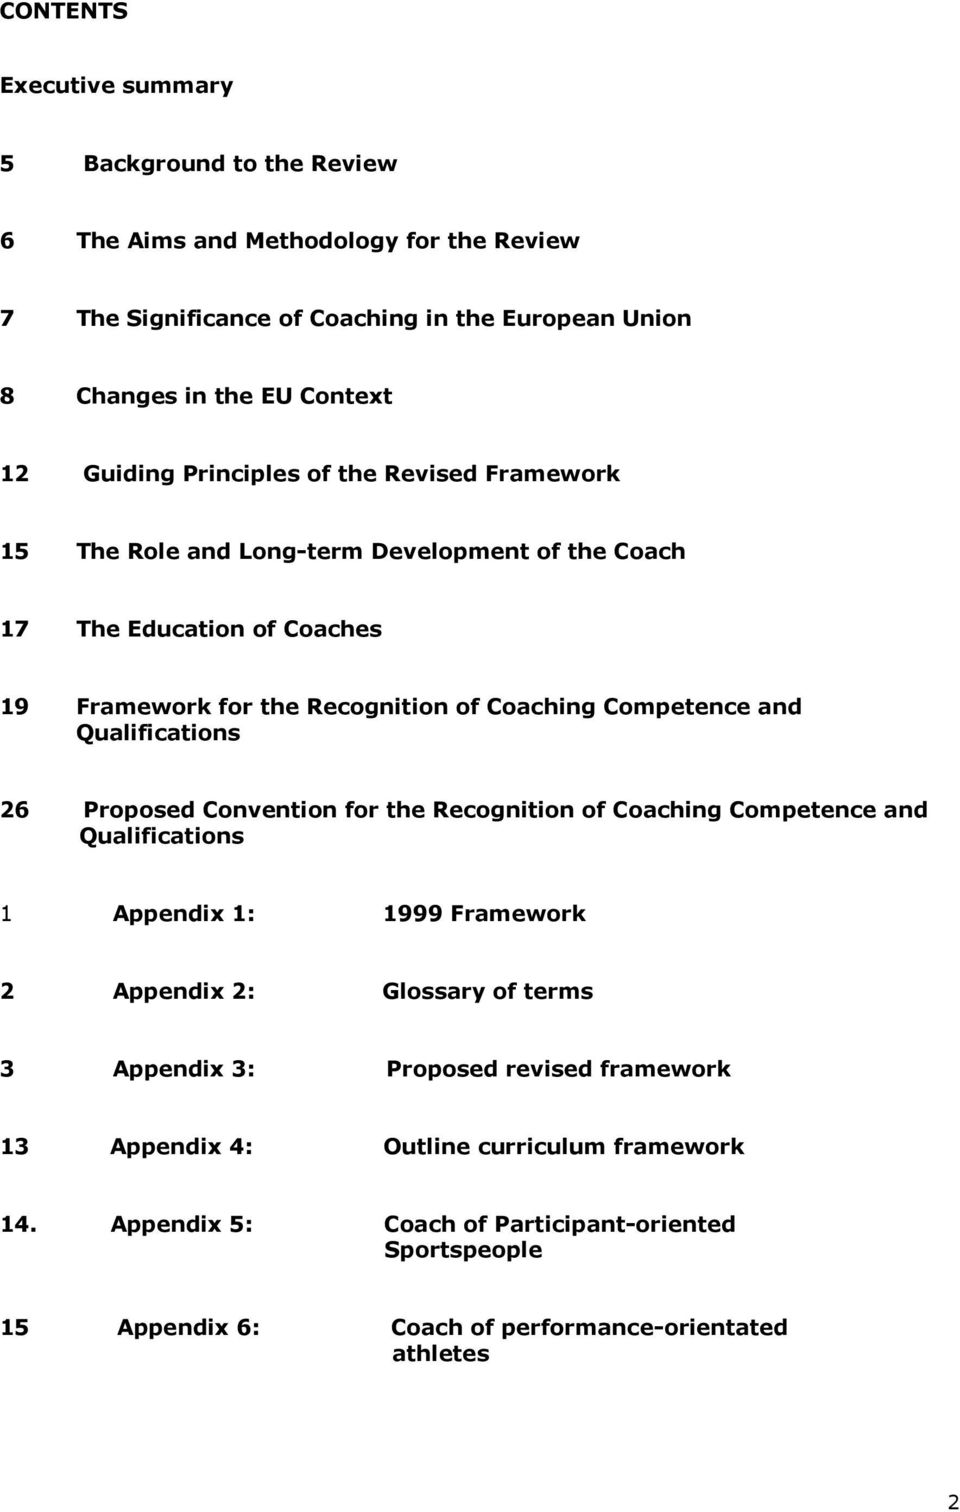 and Qualifications 26 Proposed Convention for the Recognition of Coaching Competence and Qualifications 1 Appendix 1: 1999 Framework 2 Appendix 2: Glossary of terms 3 Appendix 3: